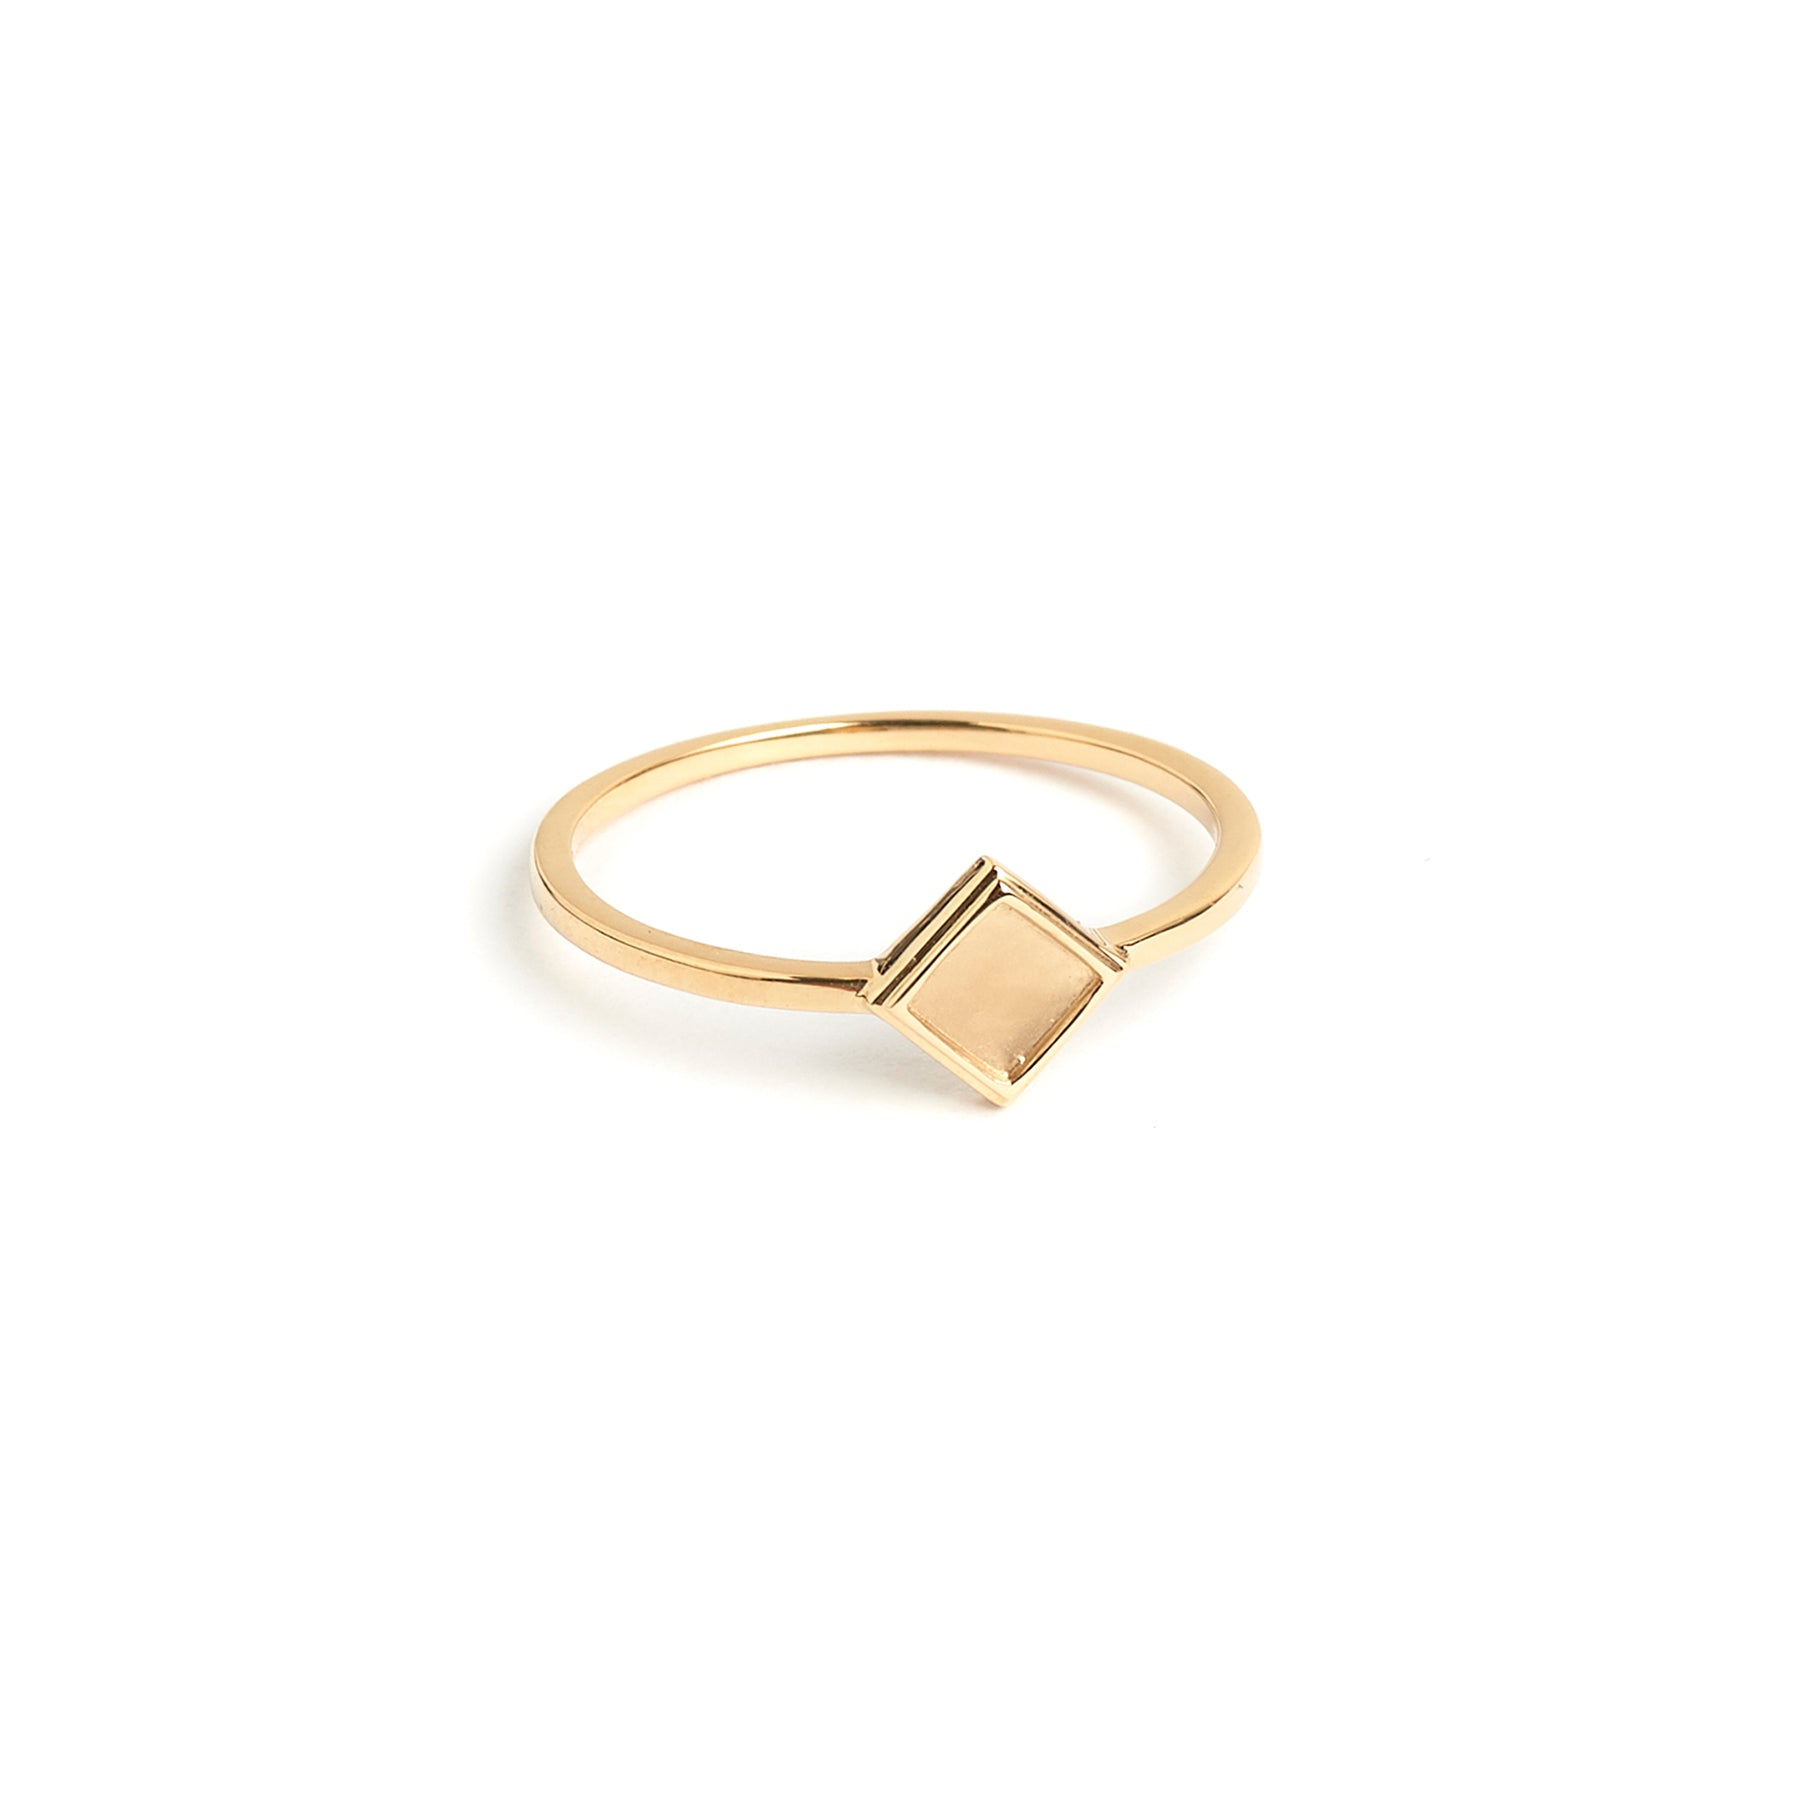 fine jewelry. 14k gold diamond shaped stacking ring